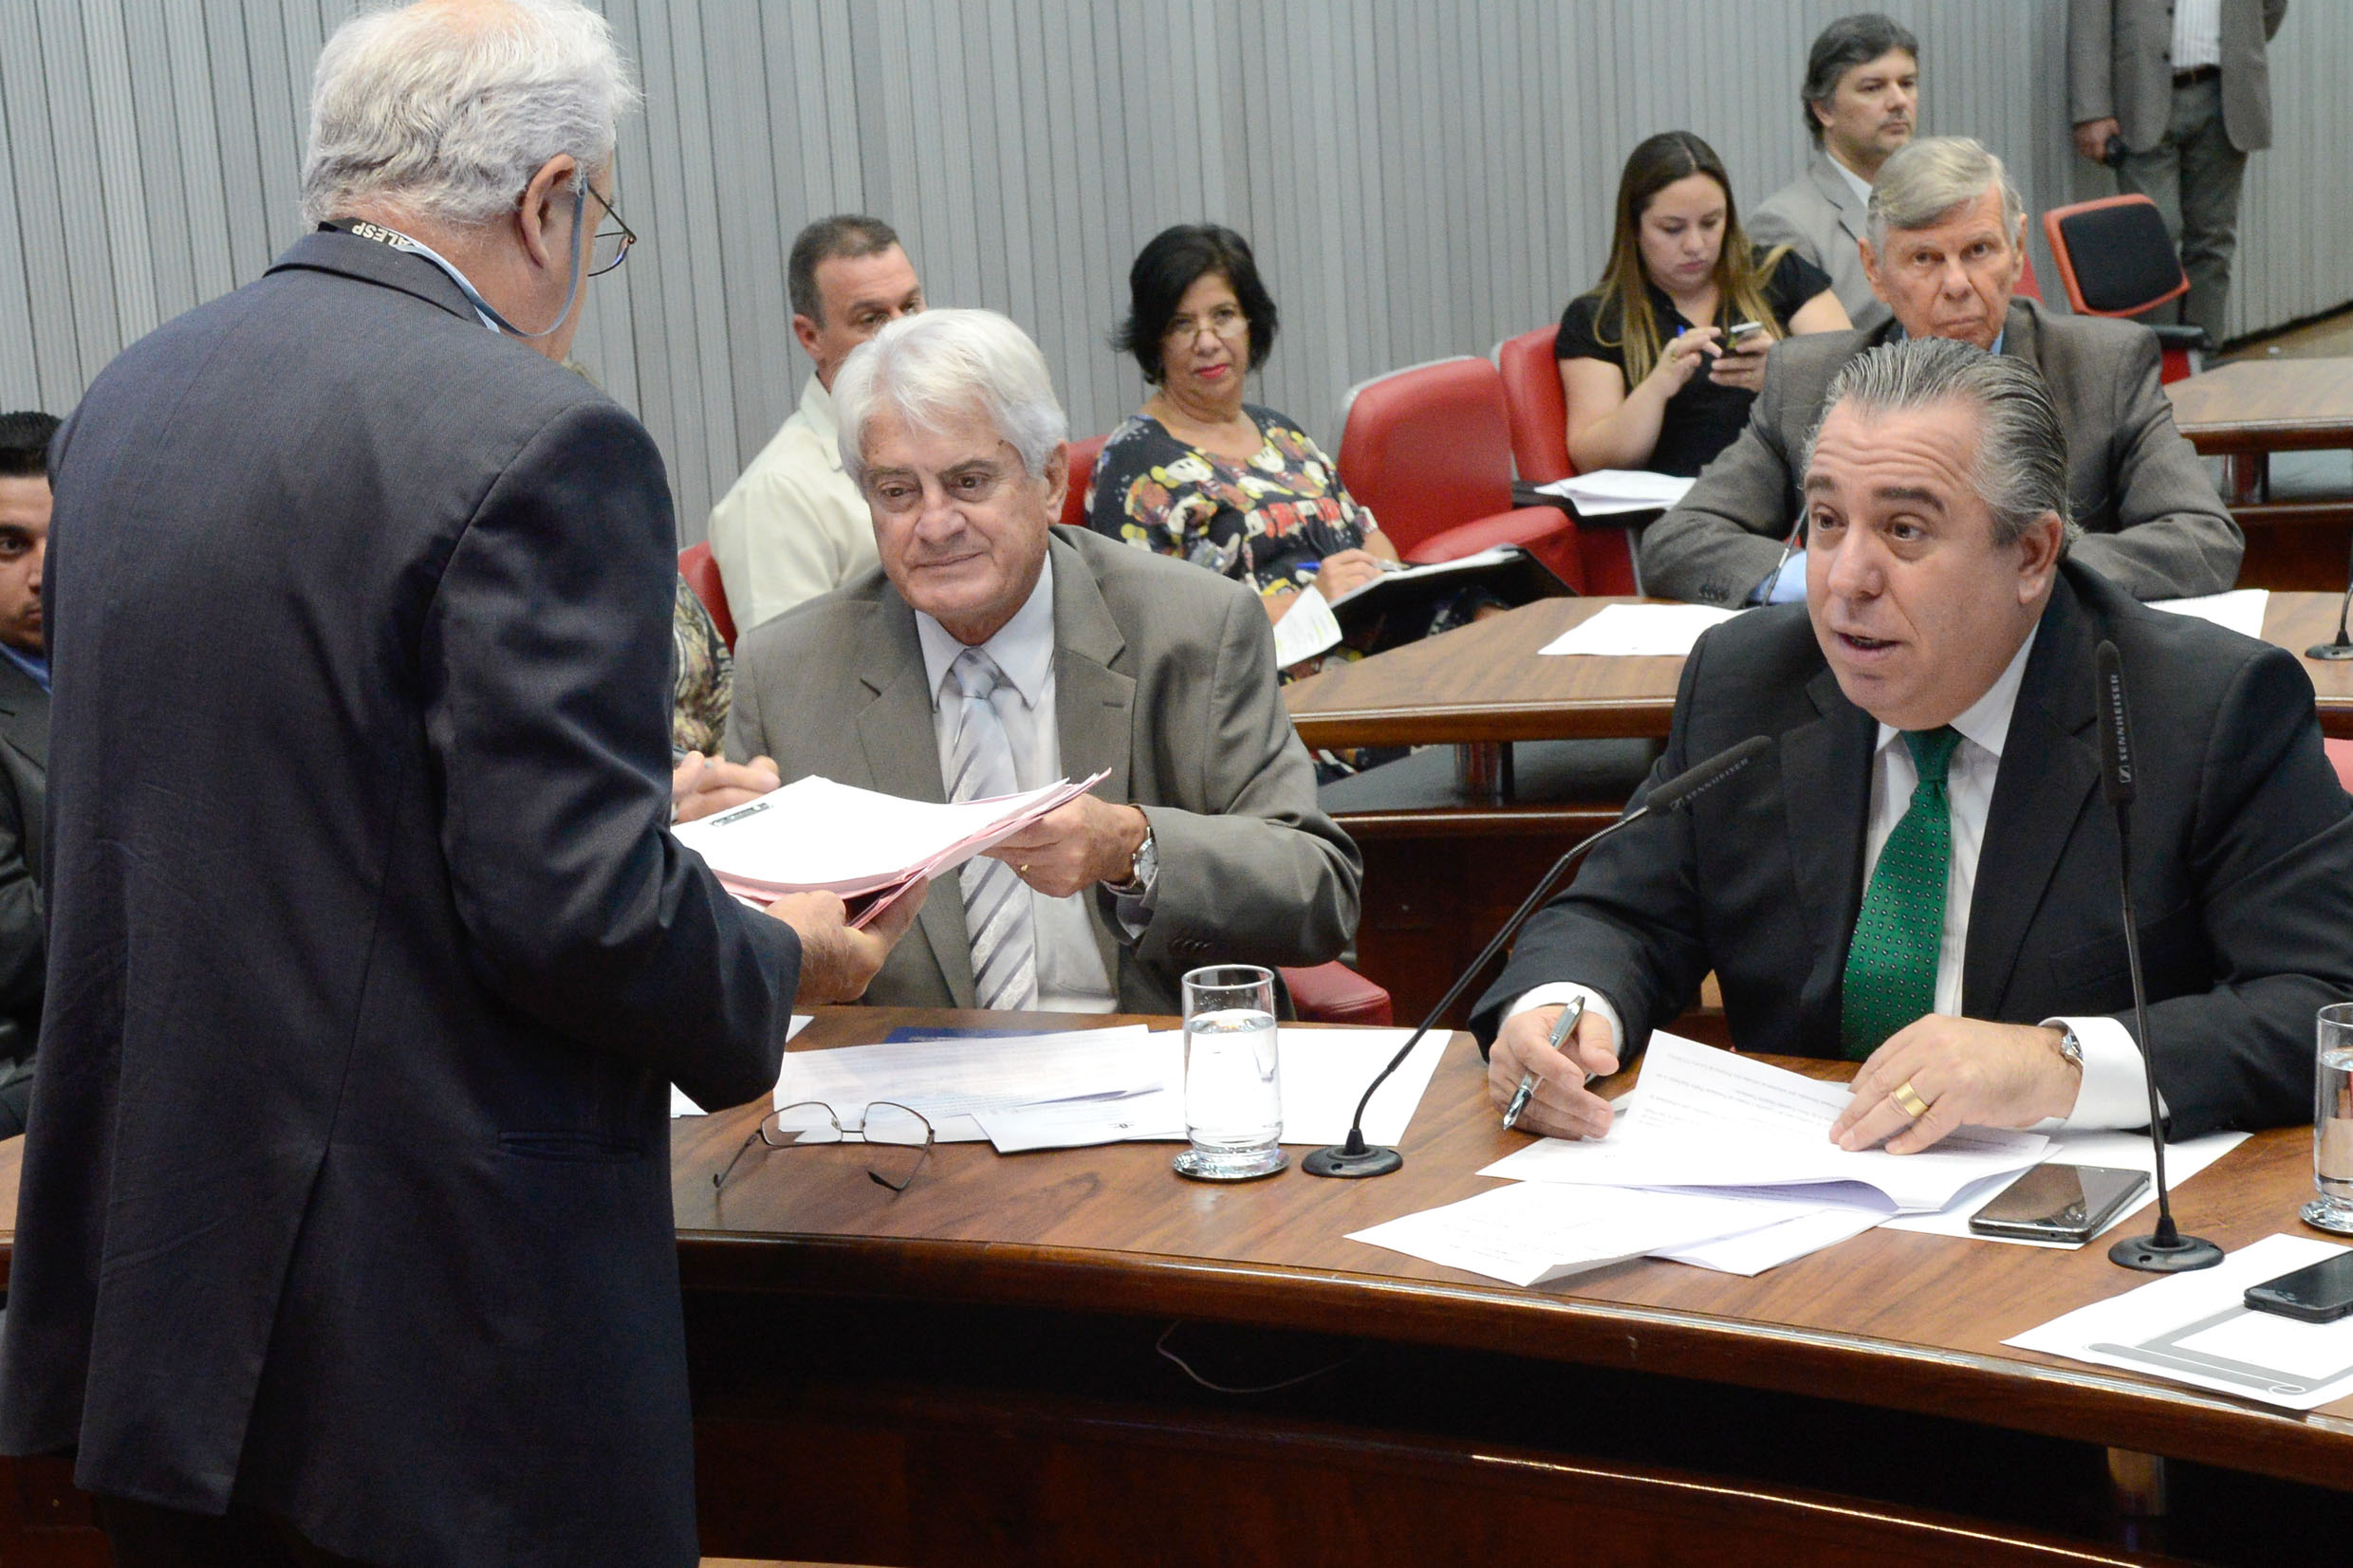 Roberto Engler e Adilson Rossi<a style='float:right' href='https://www3.al.sp.gov.br/repositorio/noticia/N-06-2015/fg171487.jpg' target=_blank><img src='/_img/material-file-download-white.png' width='14px' alt='Clique para baixar a imagem'></a>